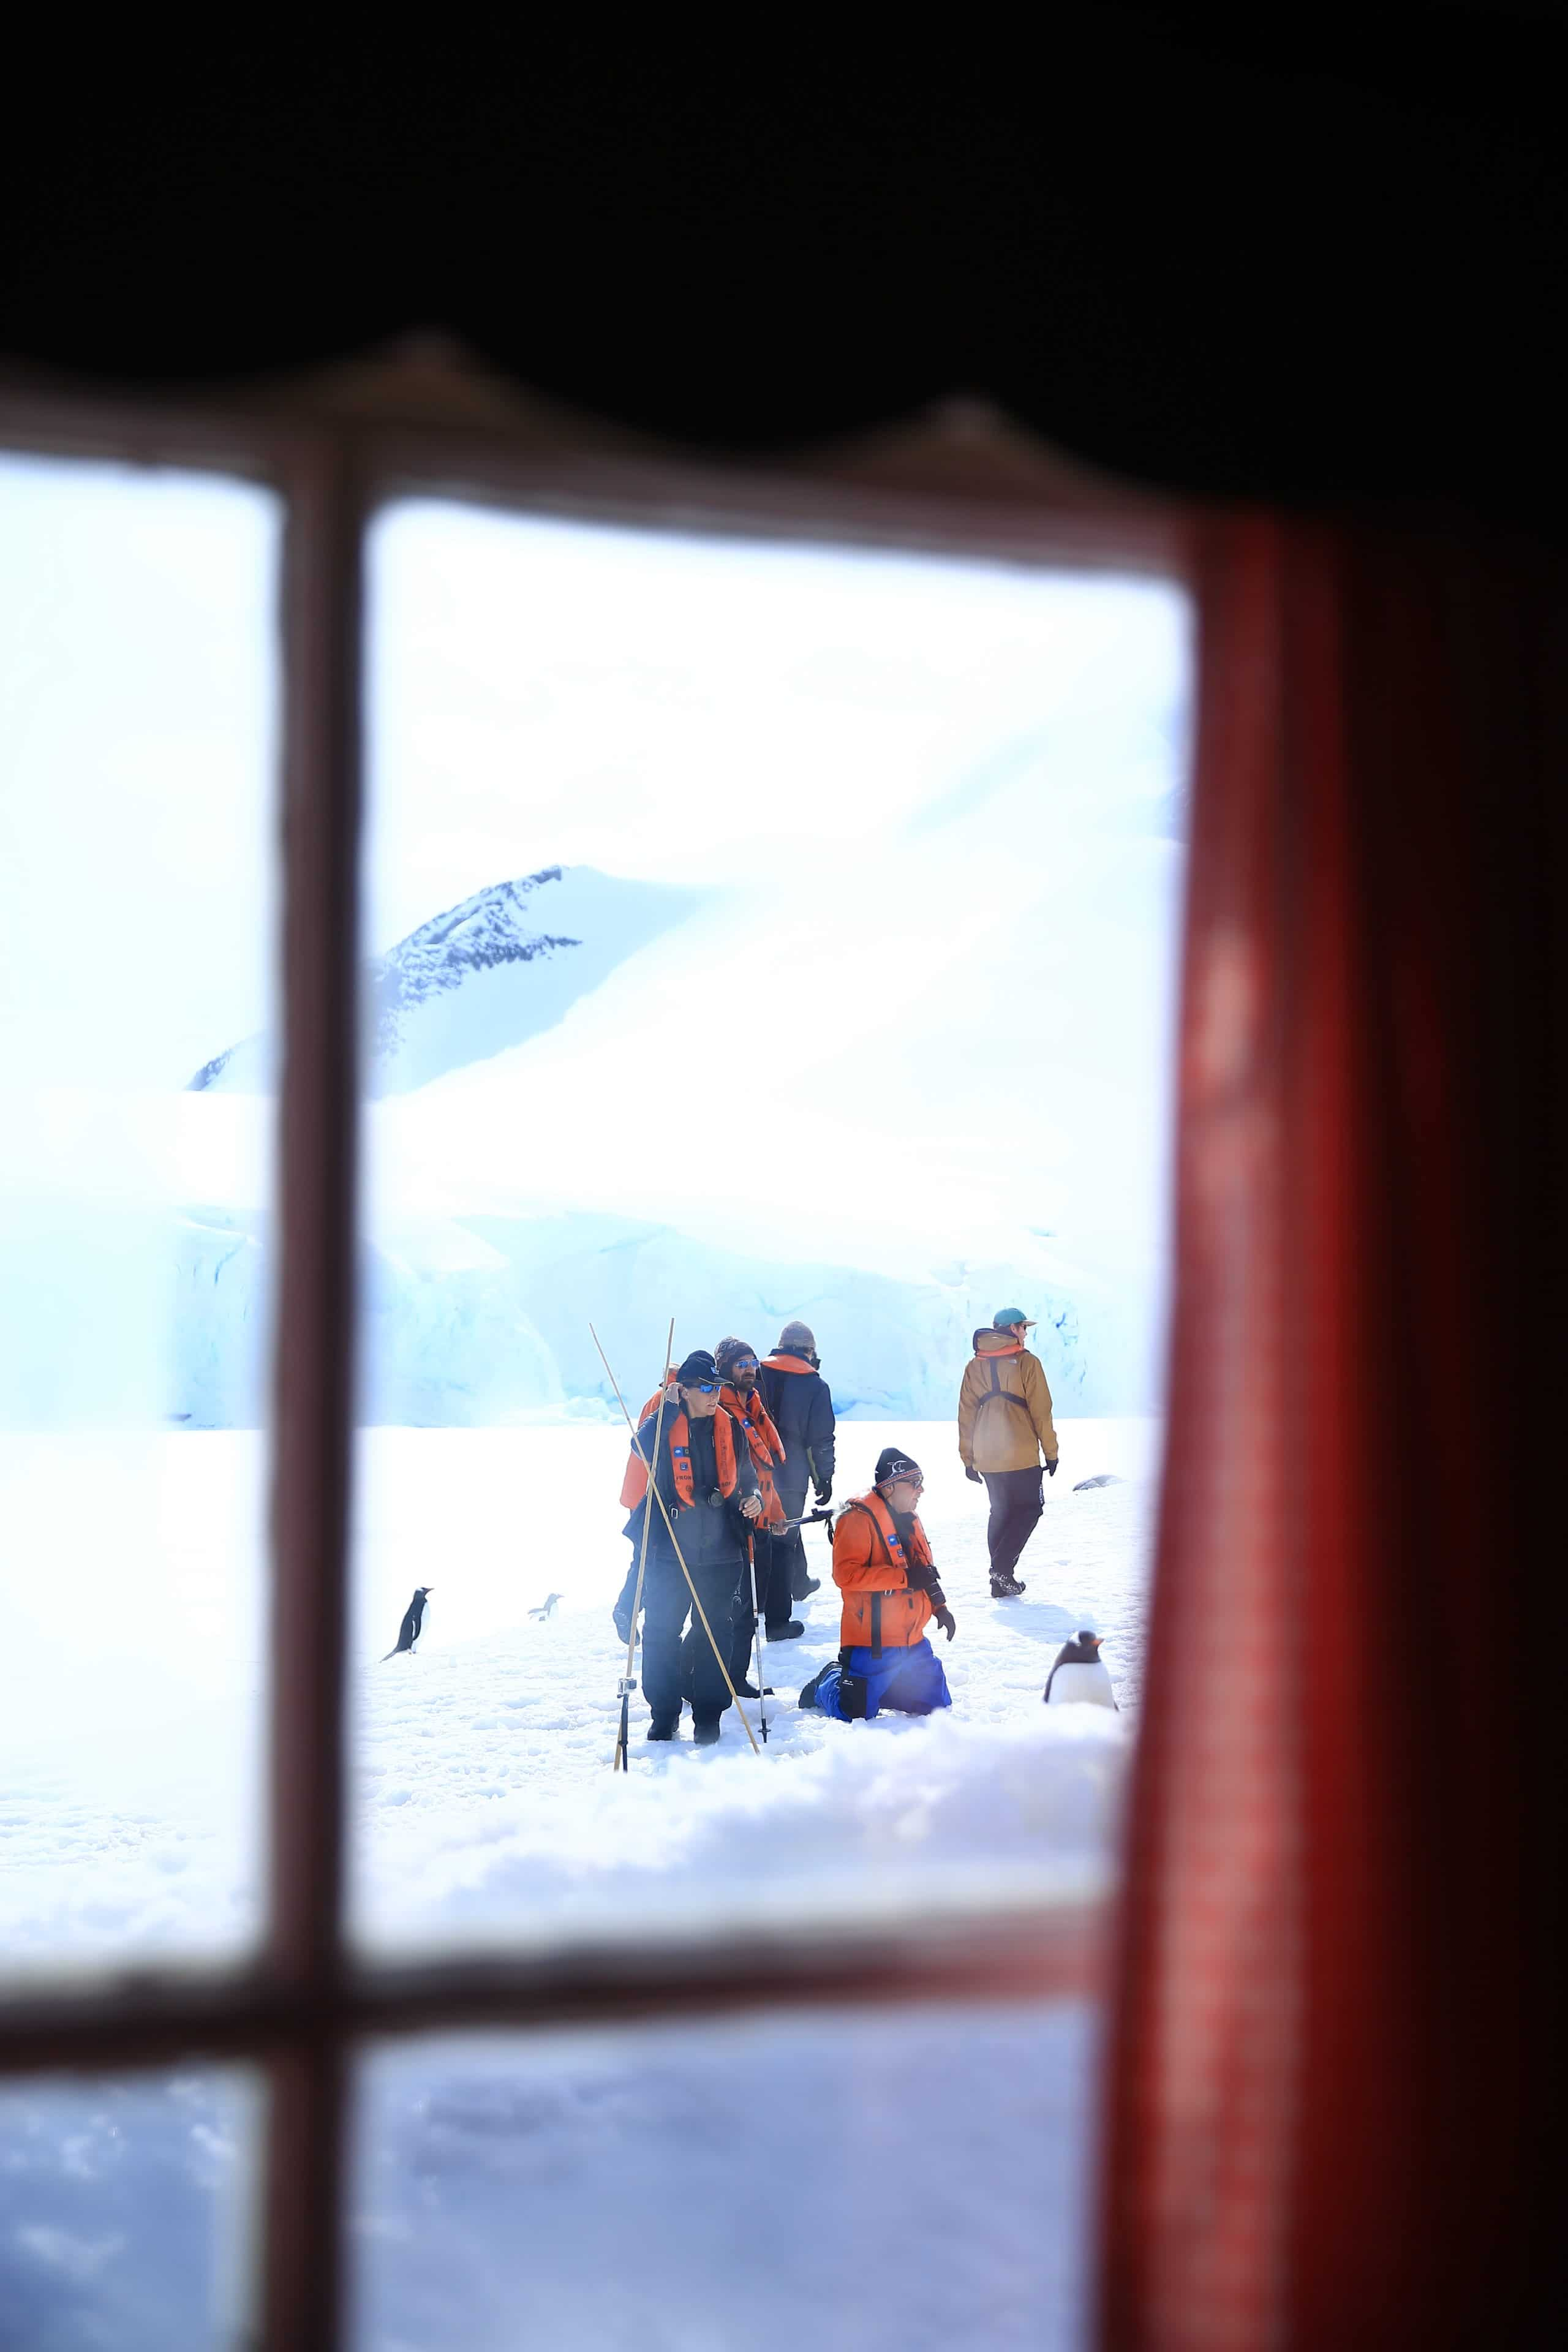 From inside the post office at Port Lockroy